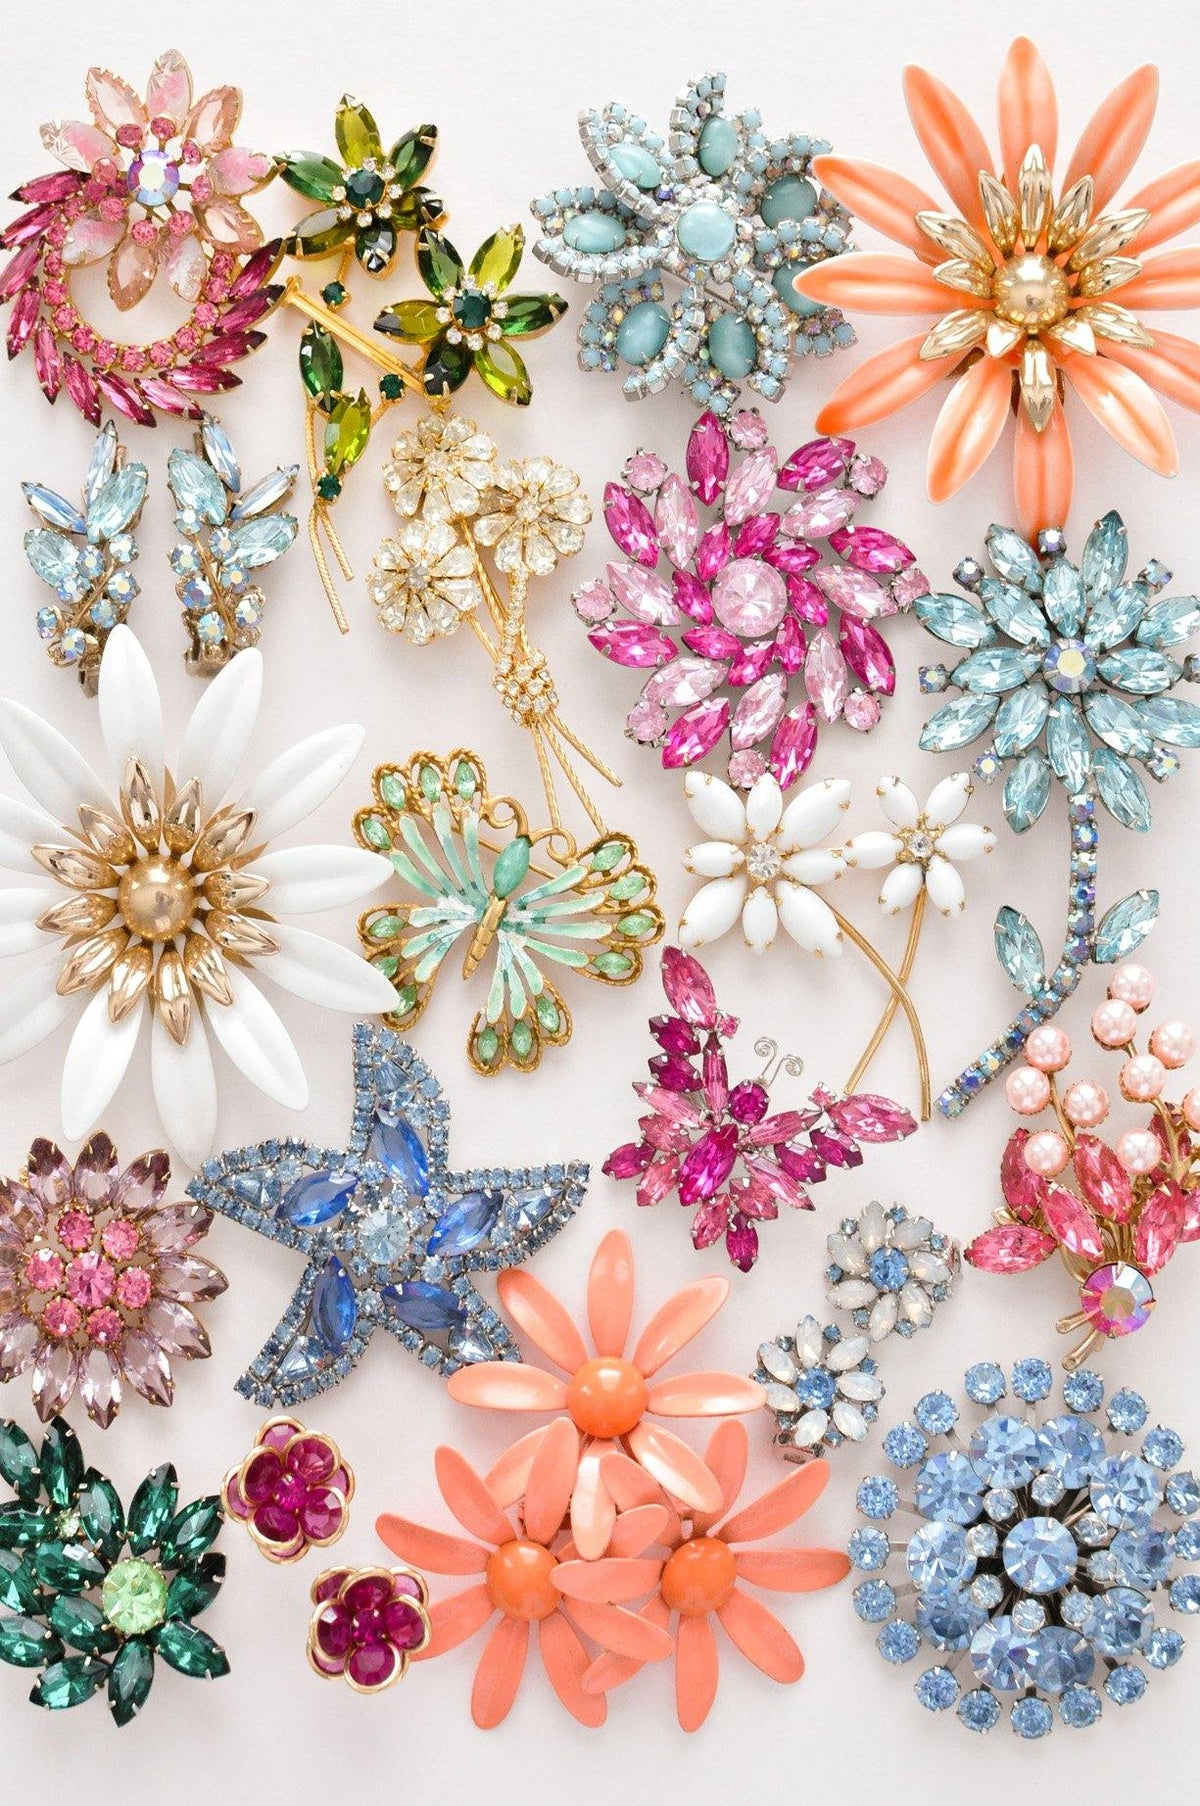 Colorful vintage brooches from Sweet & Spark.